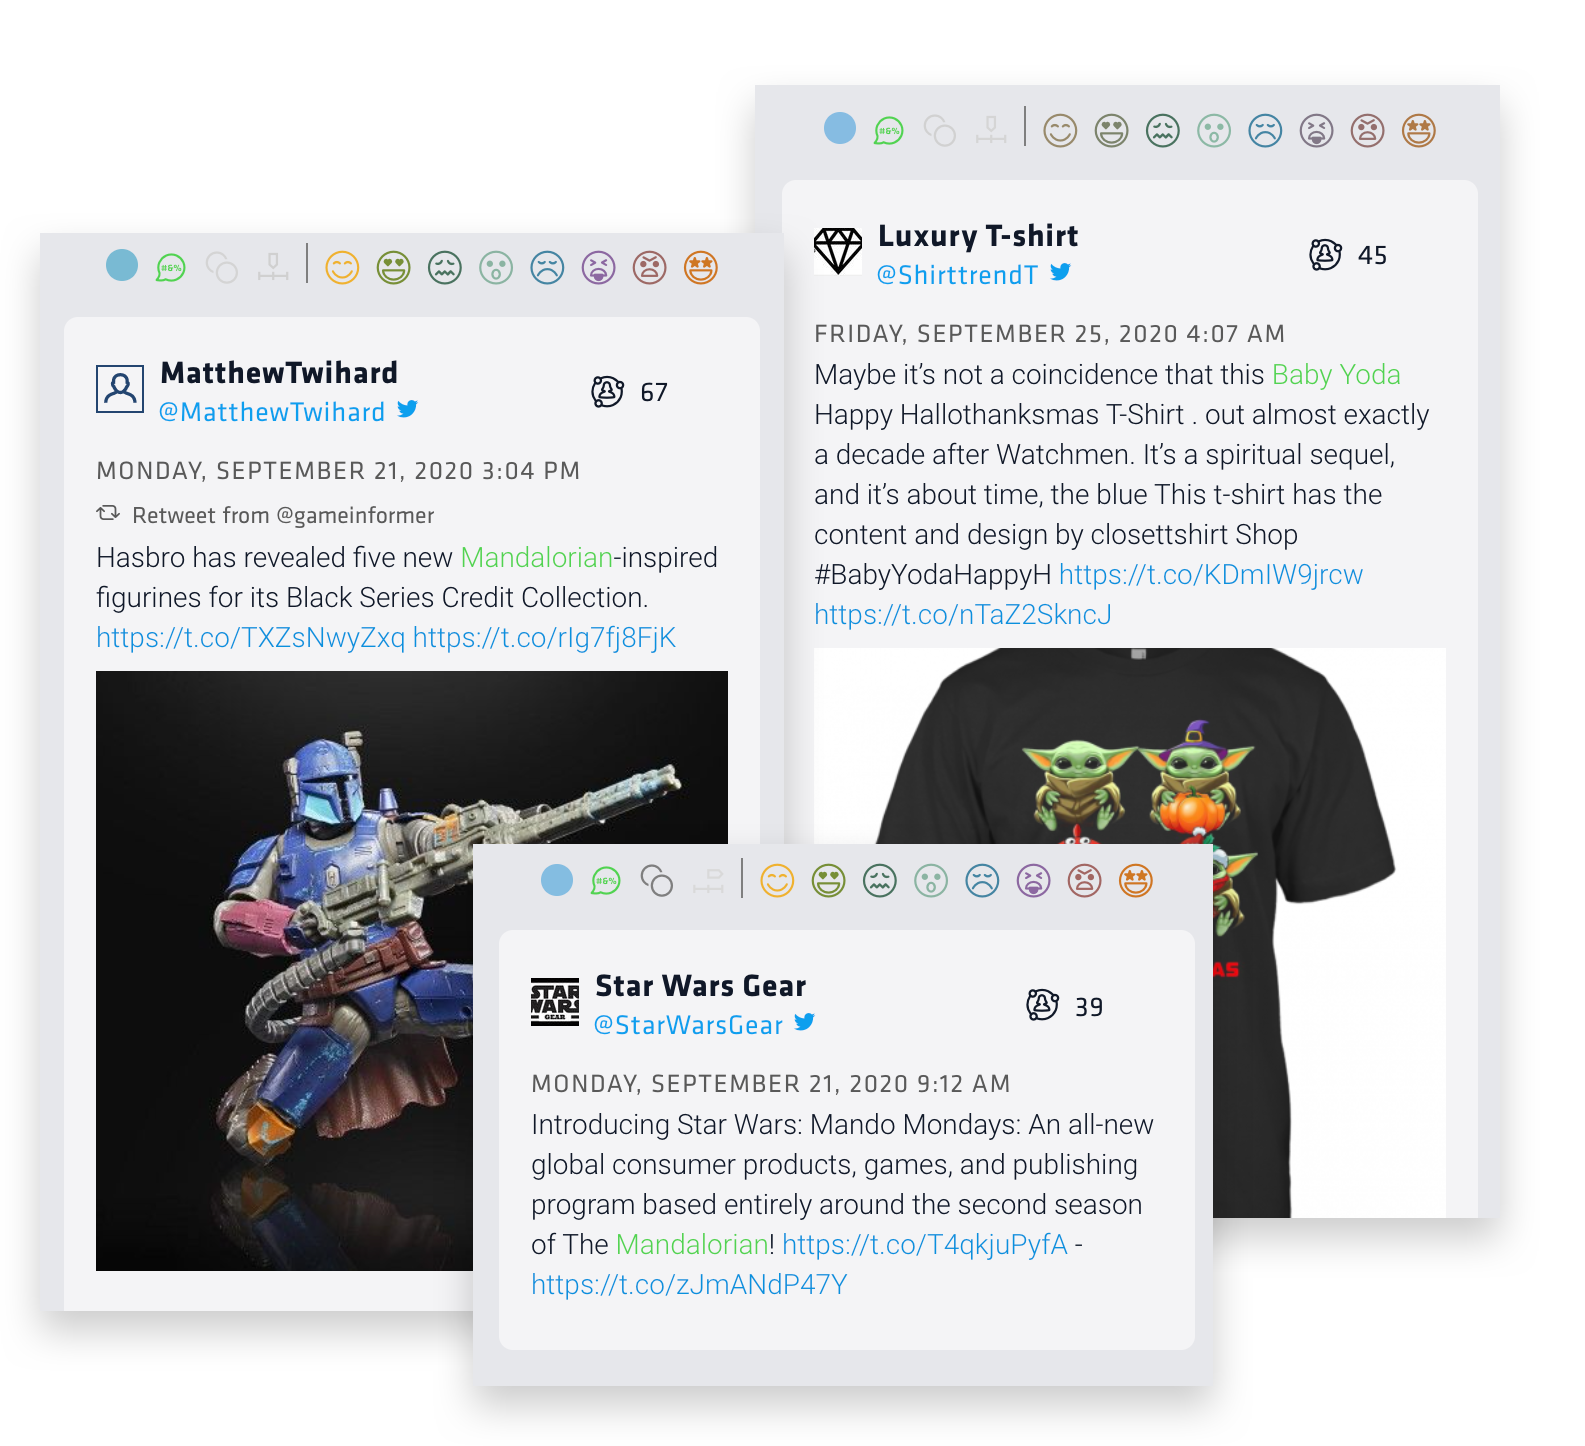 Three tweets from Nuvi's social listening platform show the popularity of Baby Yoda and The Mandalorian tv show merchandise. The first is of a Mandalorian in blue armor and a machine blaster gun. The second is a t-shirt with four Baby Yoda images for Halloween, Thanksgiving, and Christmas. The last is a tweet that reads: Introducing Star Wars: Mando Mondays: an all-new global consumer products, games, and publishing program based entirely around the second season of the Mandalorian""